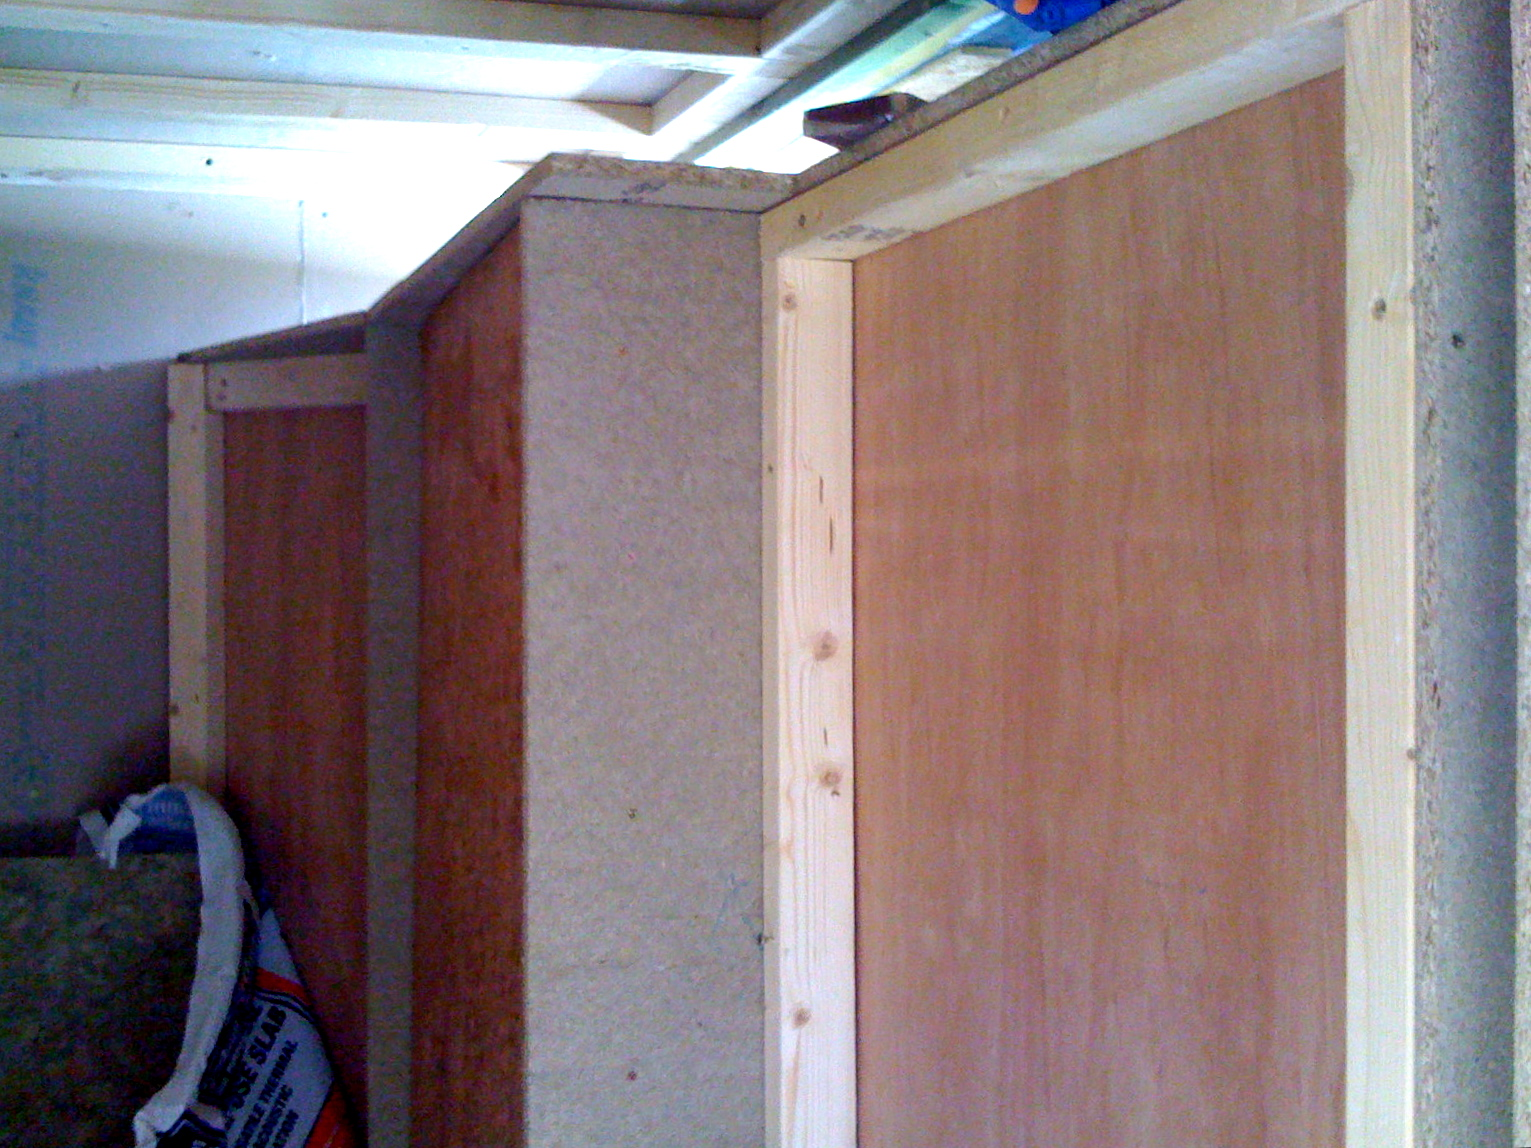 Control room bass trap, viewed from the doorway. Rockwool panels will hang in front of the plywood, and hessian will be stretched over the whole thing.